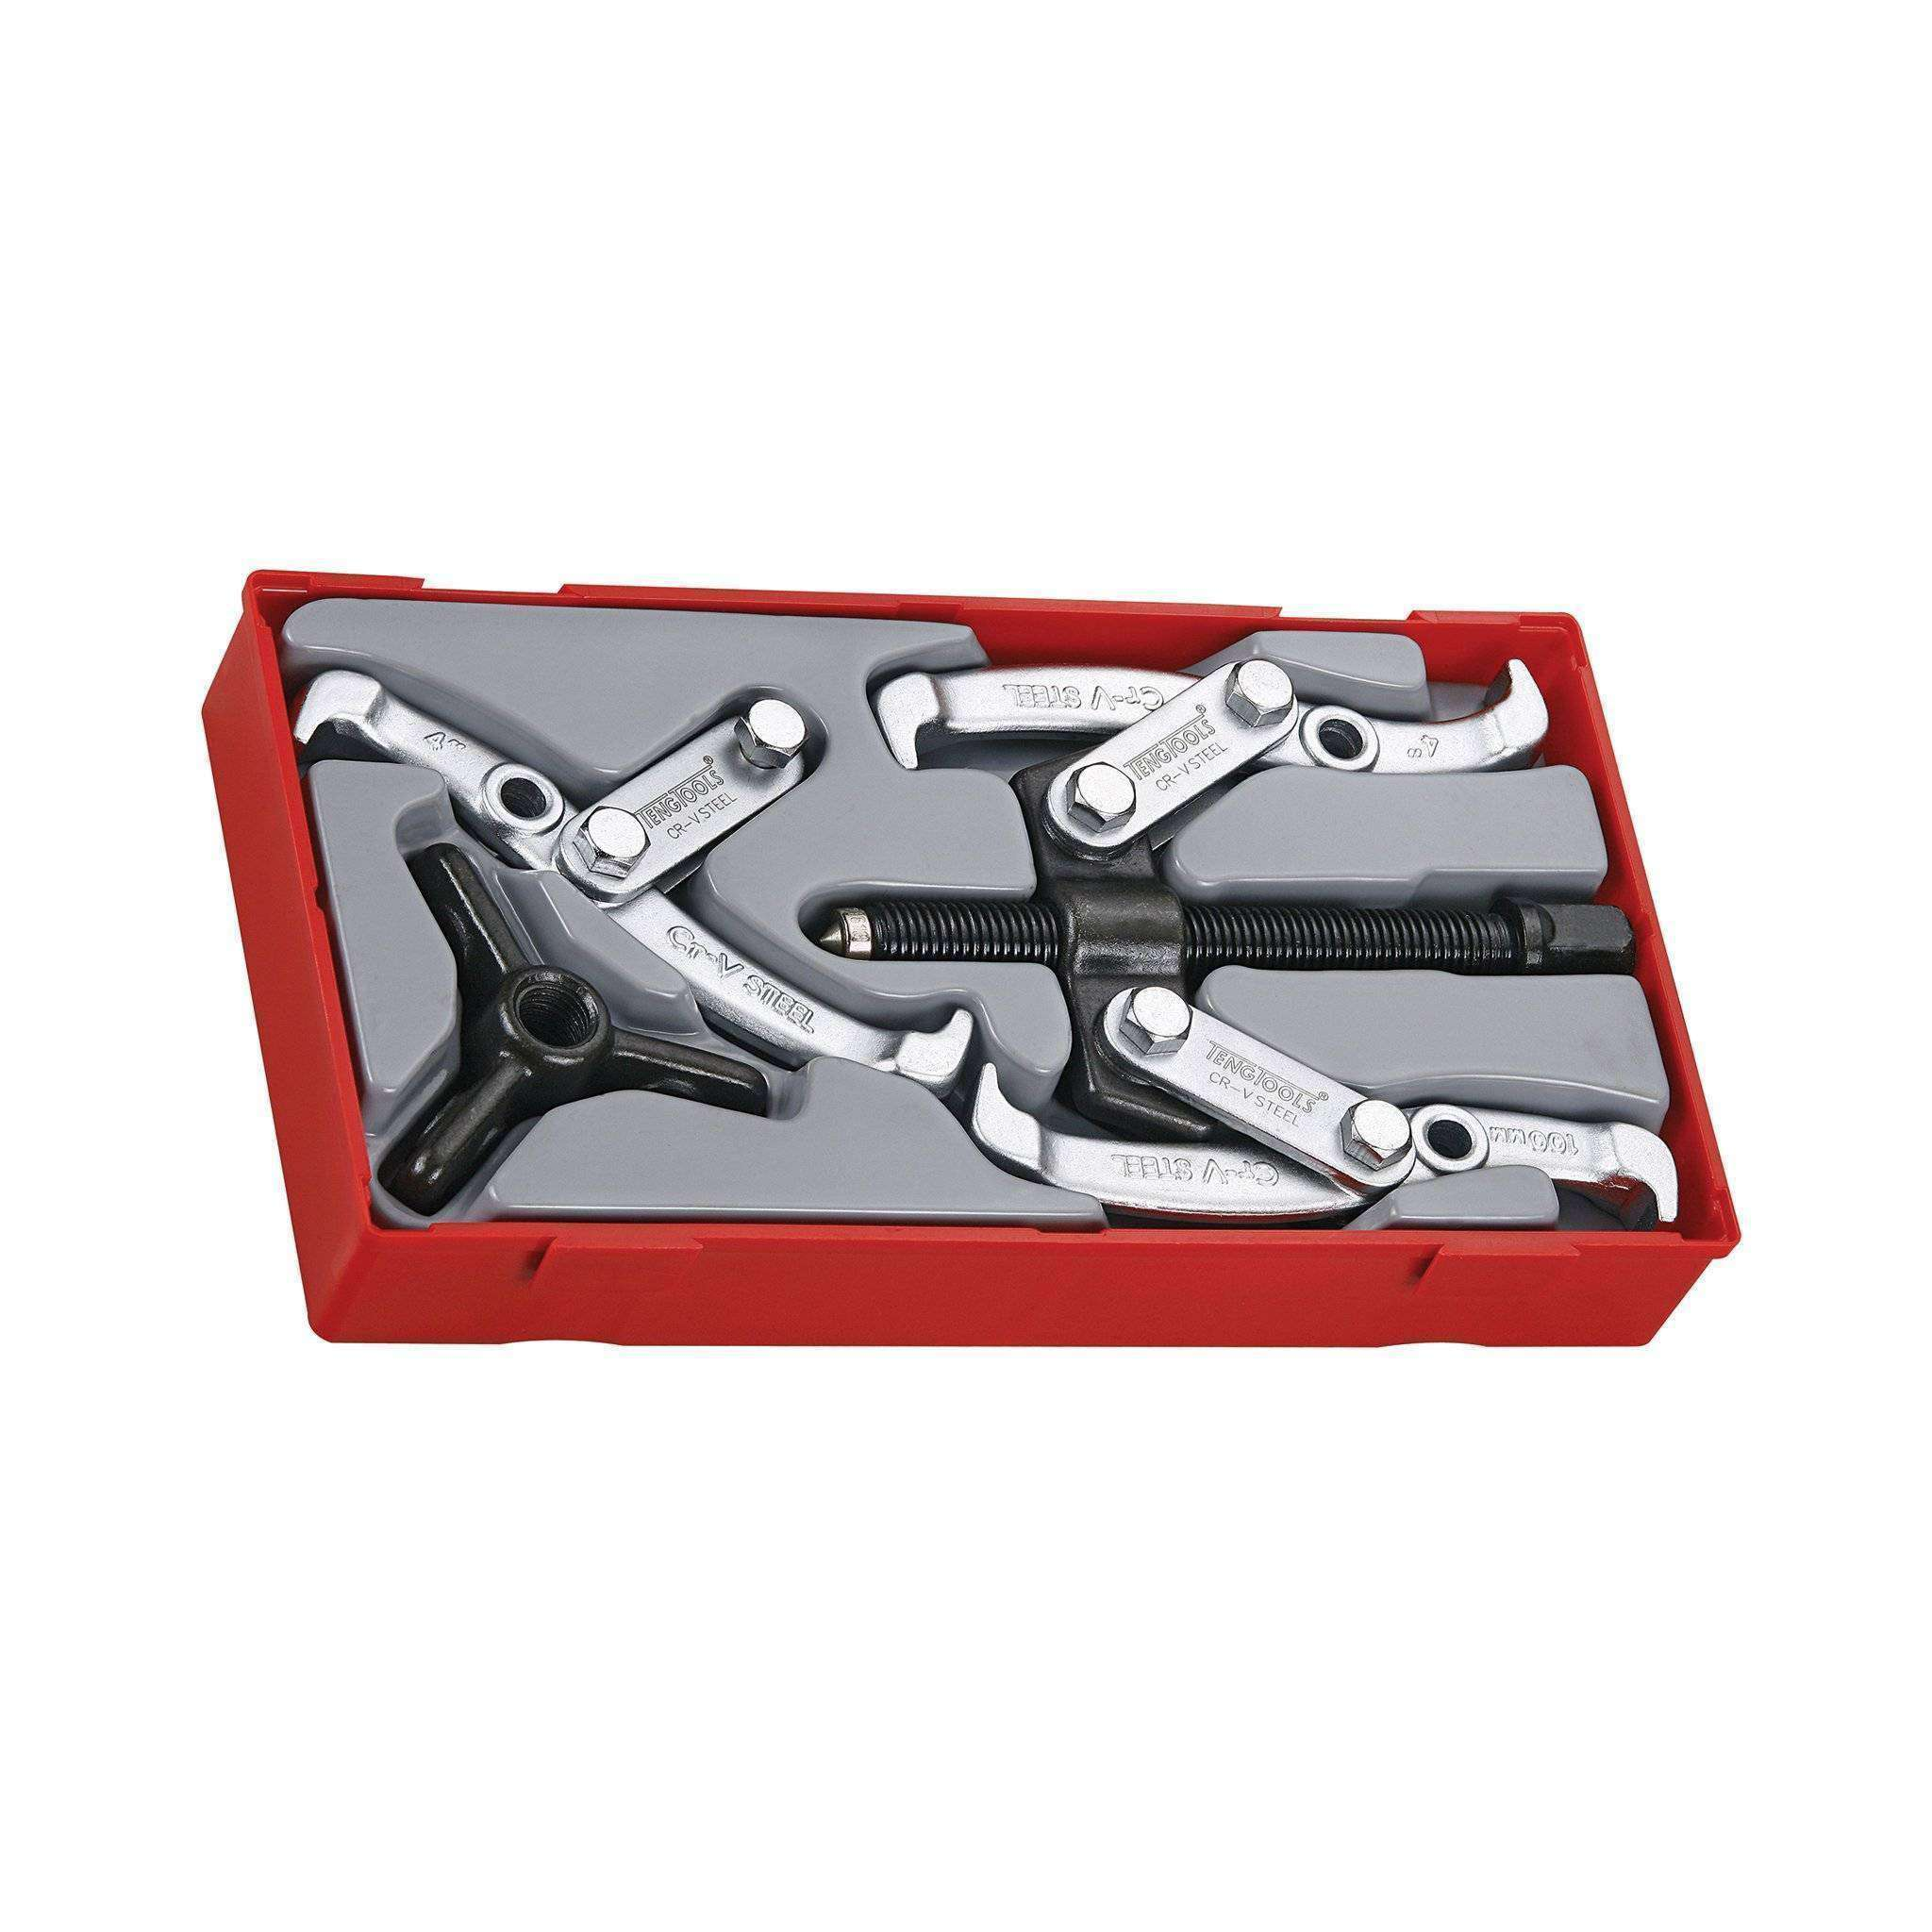 Teng Tools - 2 Piece Combination Puller Set - TEN-O-TT804 - Teng Tools USA